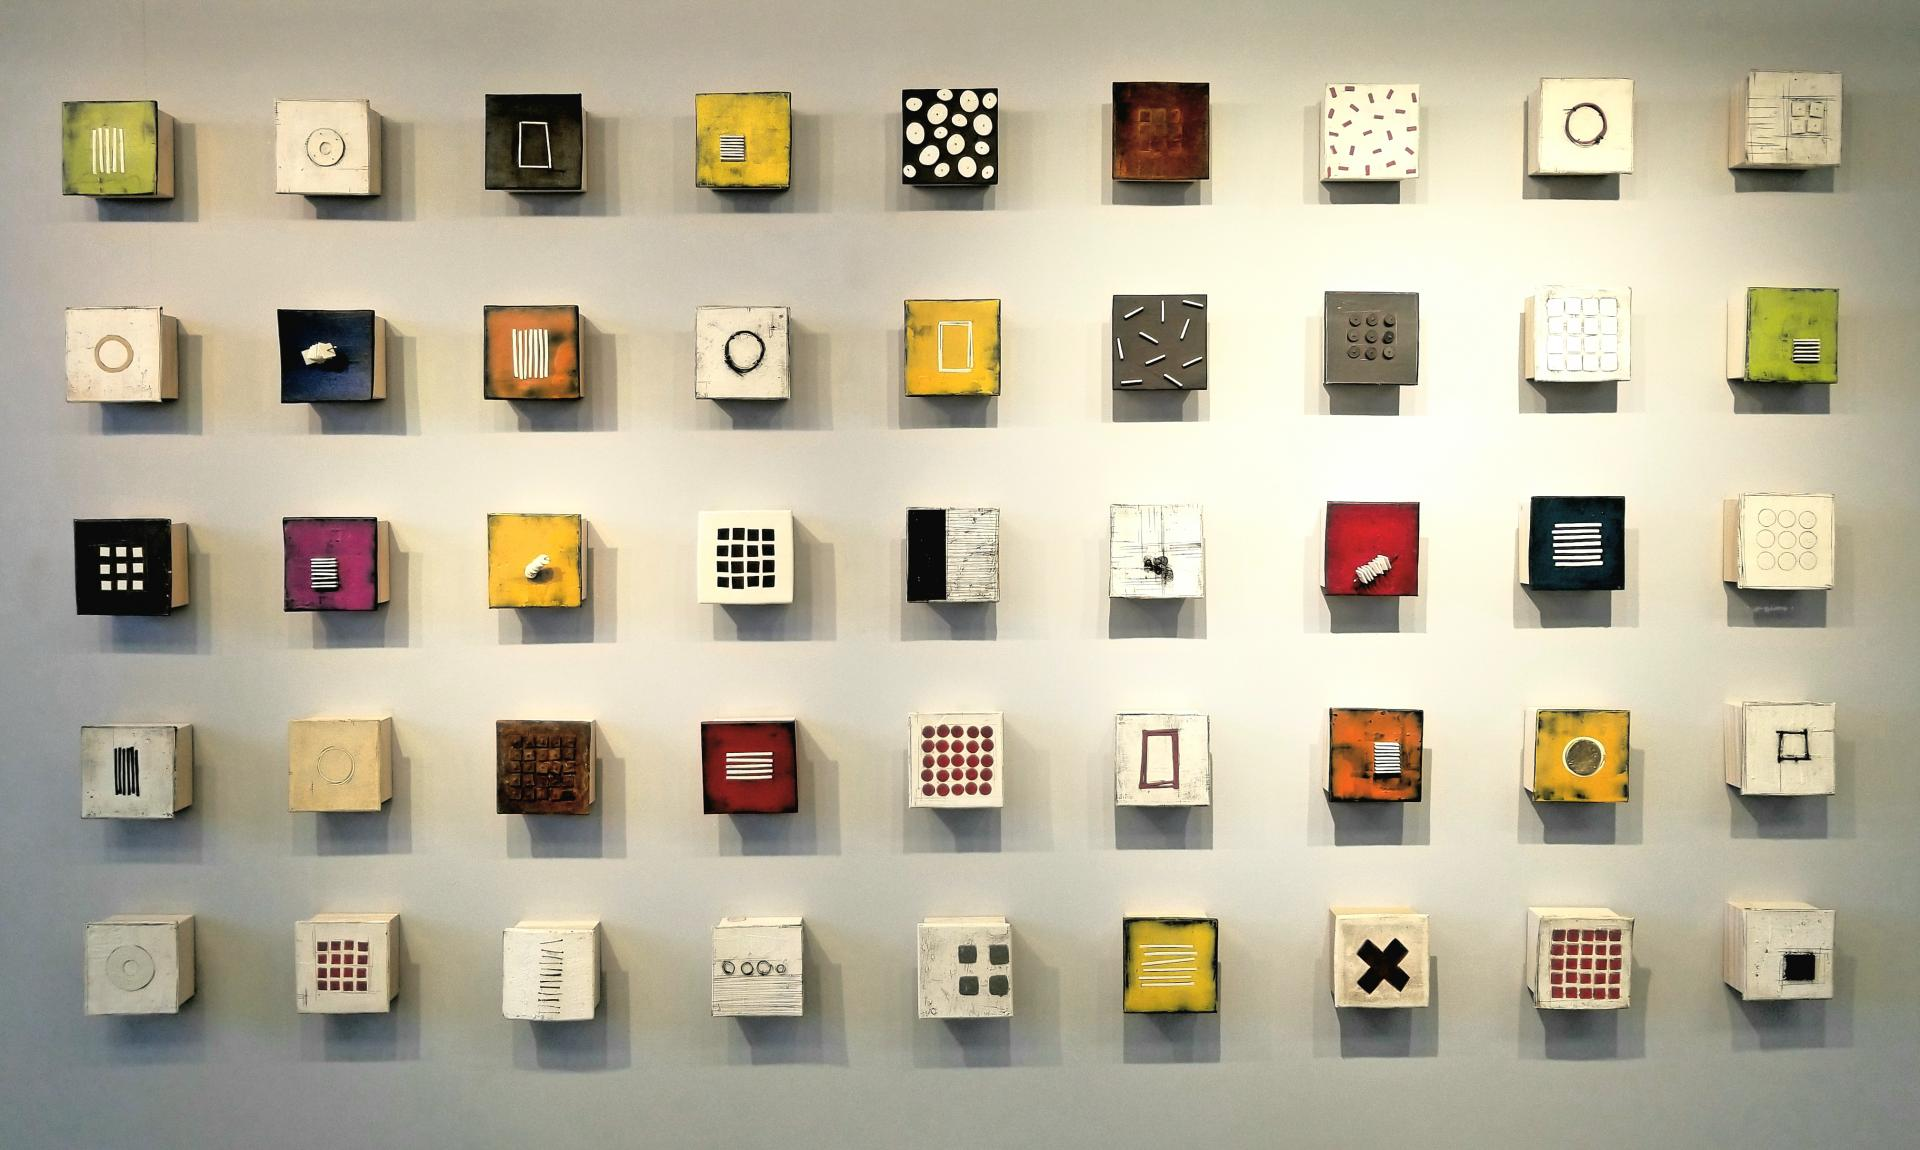 Wall of Small Squares